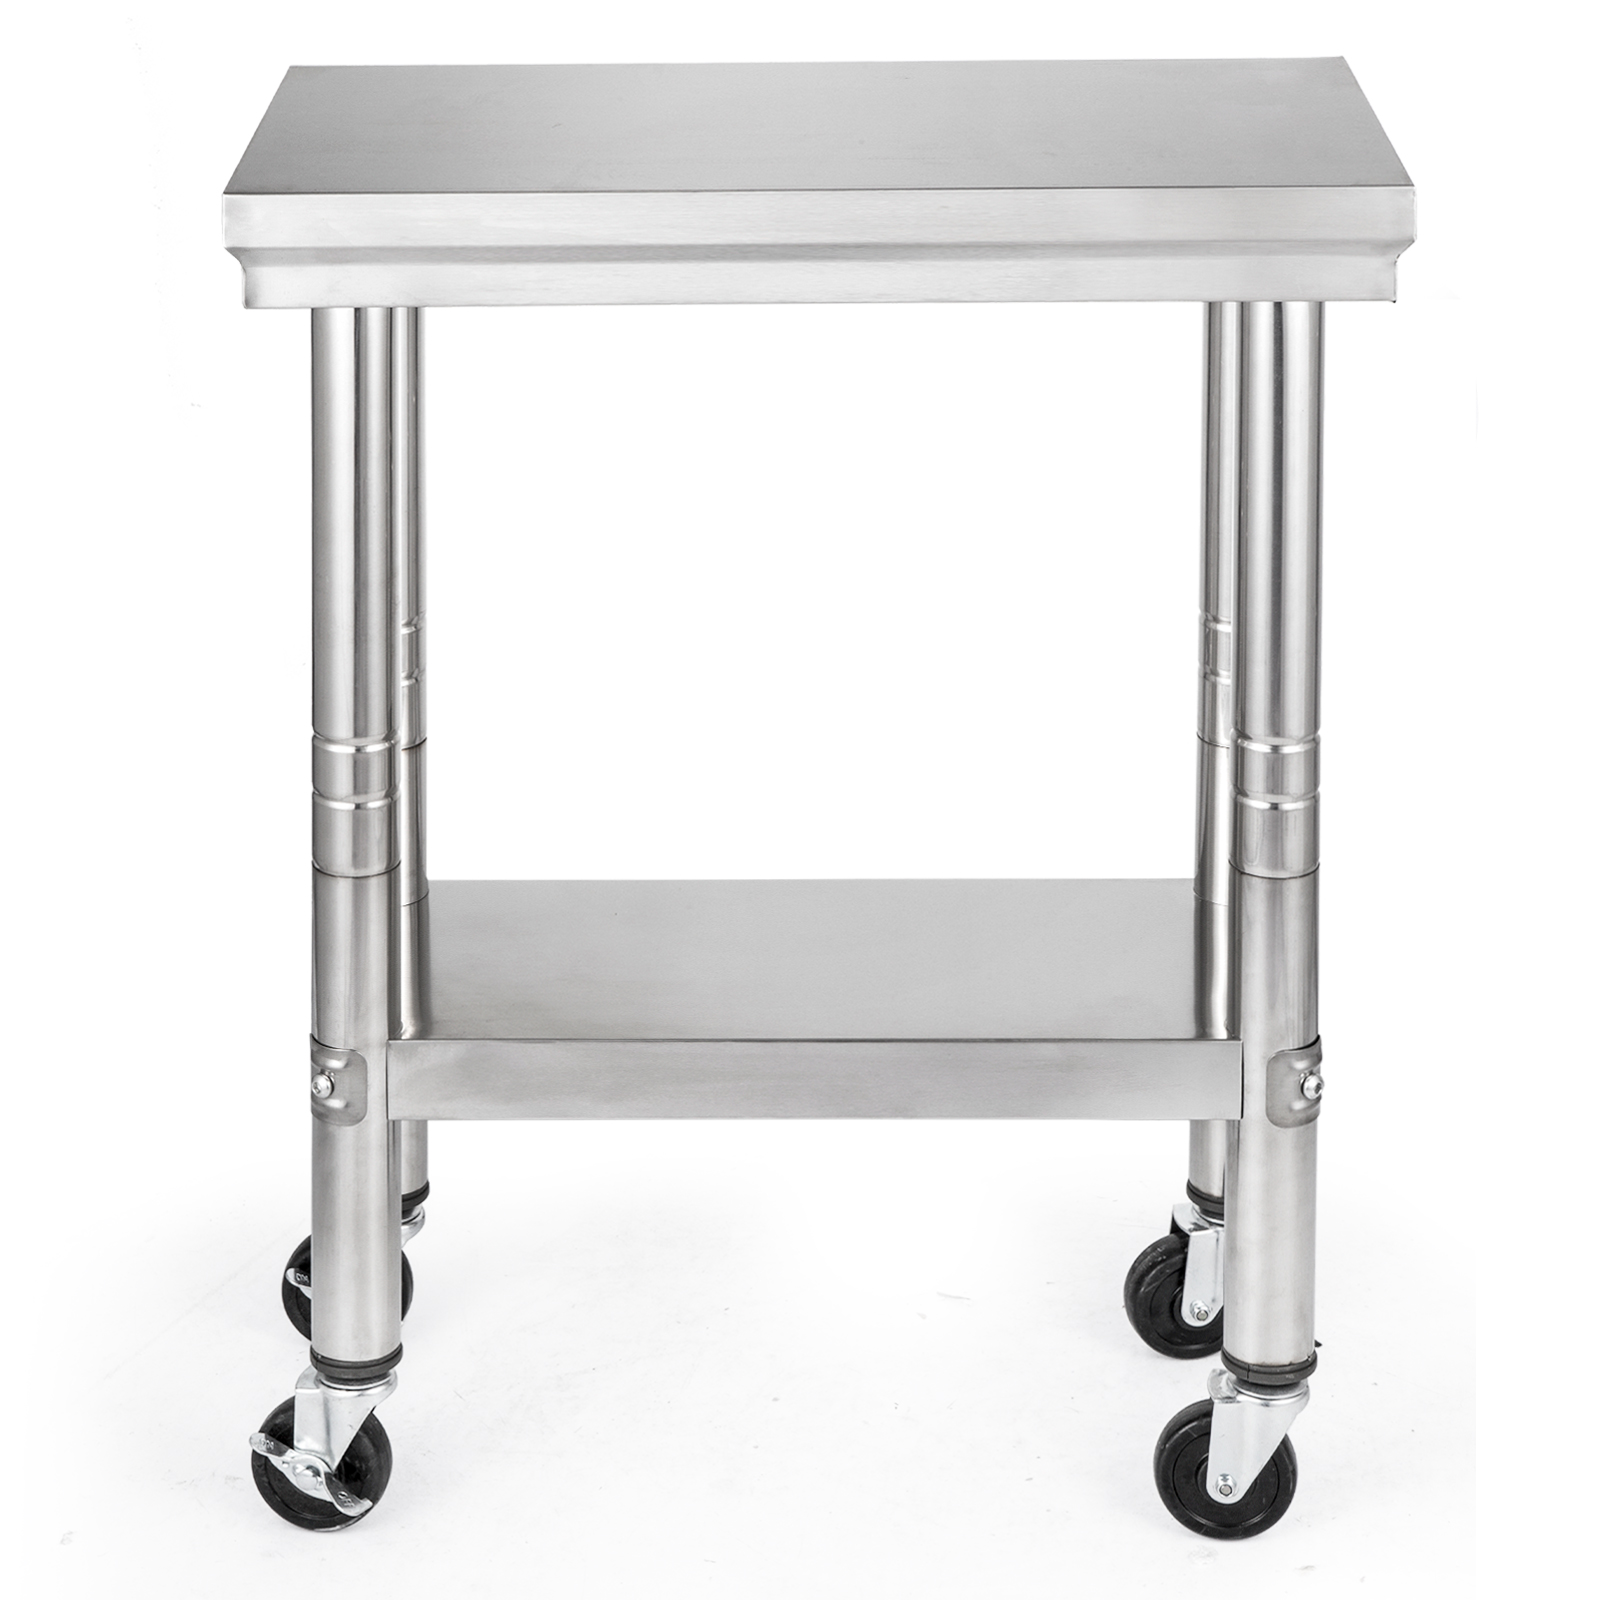 24 Quot X12 Quot Kitchen Stainless Steel Work Table Kitchen Utility